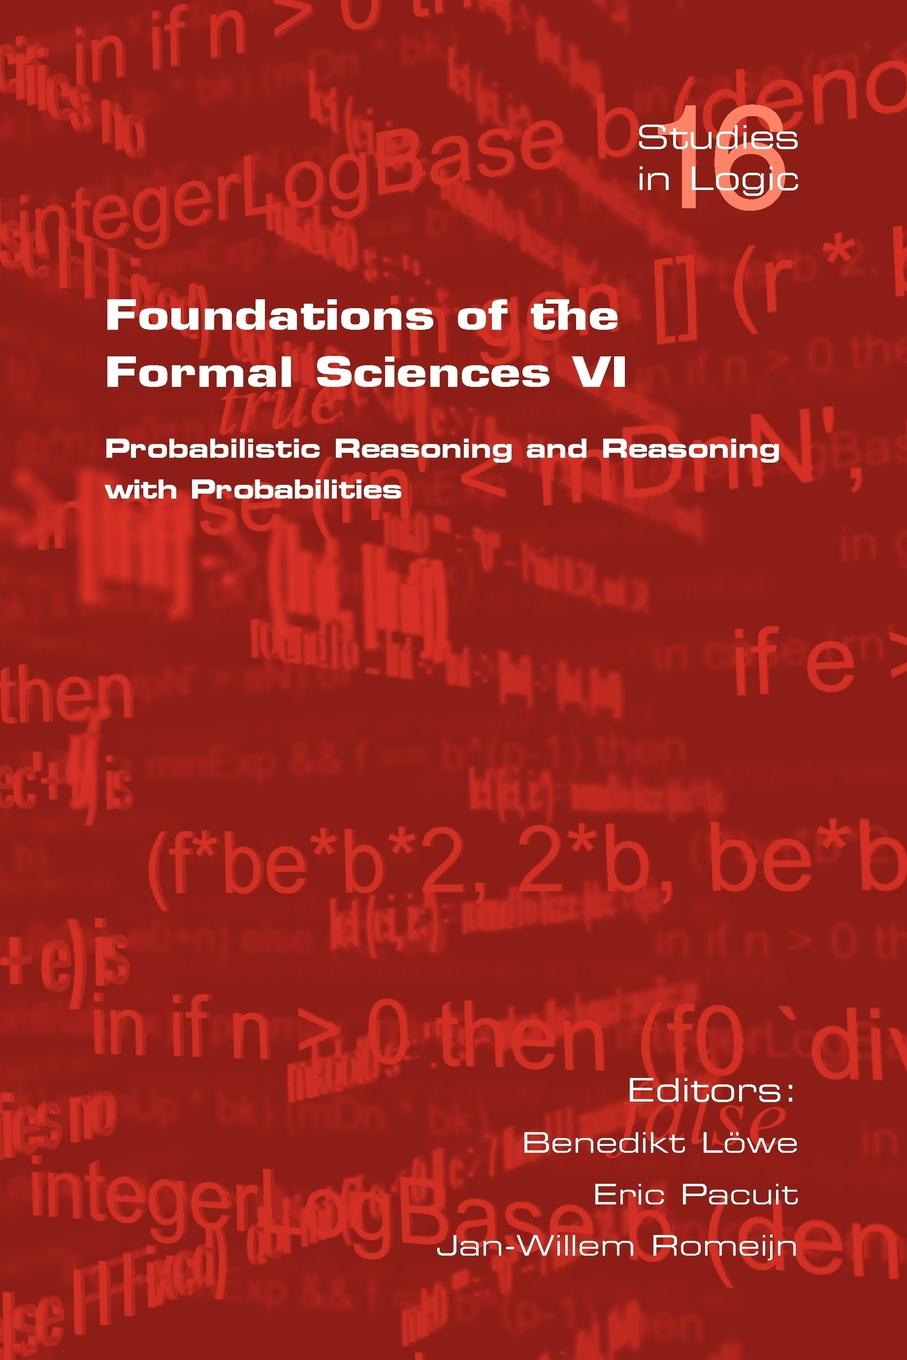 B. Loewe Foundations of the Formal Sciences VI. Probabilistic Reasoning and Reasoning with Probabilities foundations of the formal sciences vii bringing together philosophy and sociology of science